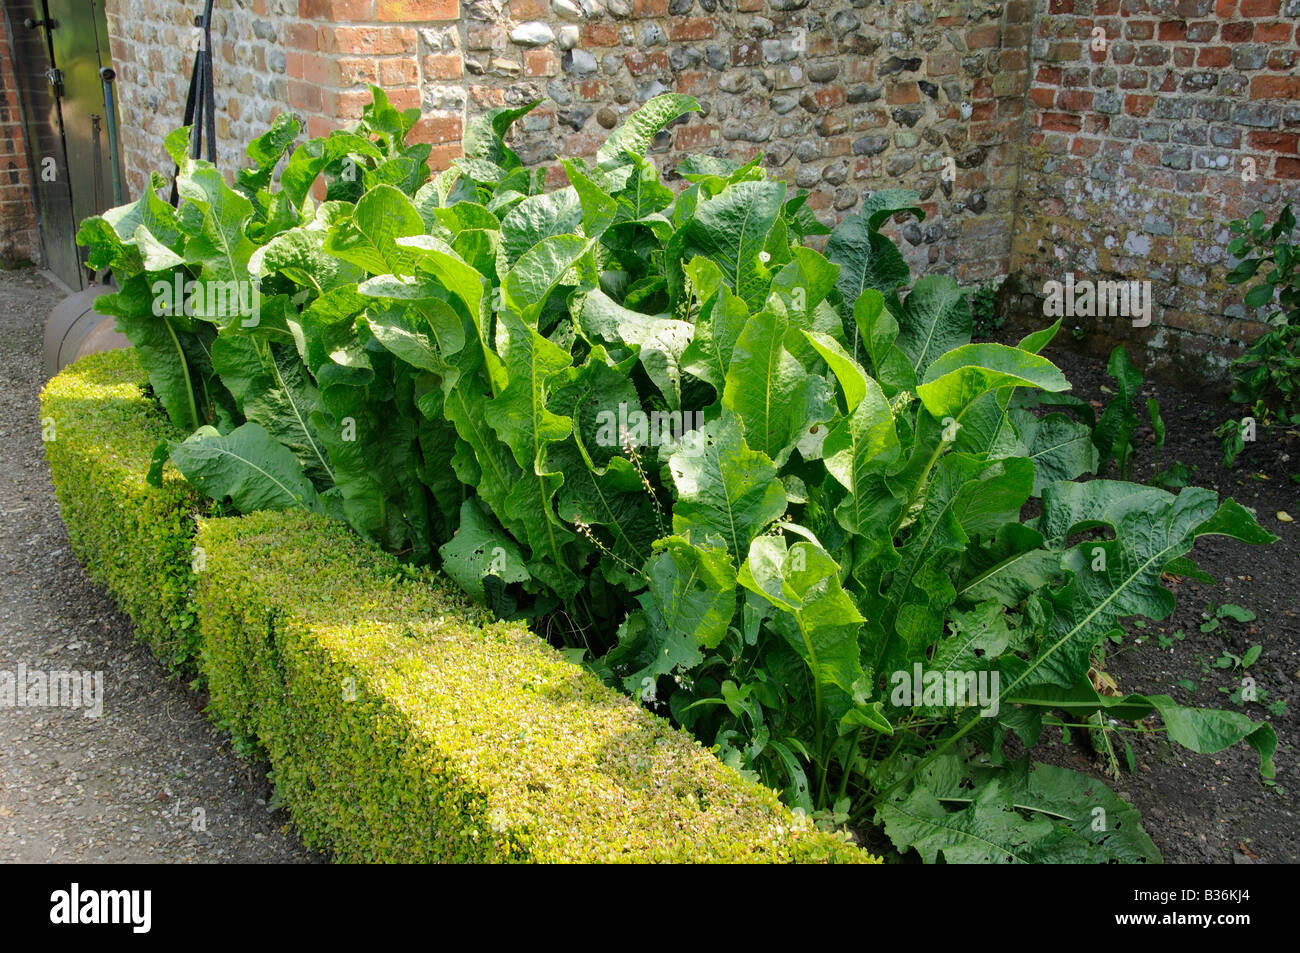 Horseradish armoracia rusticana cultivated for culinary use in a large walled garden Norfolk UK July - Stock Image